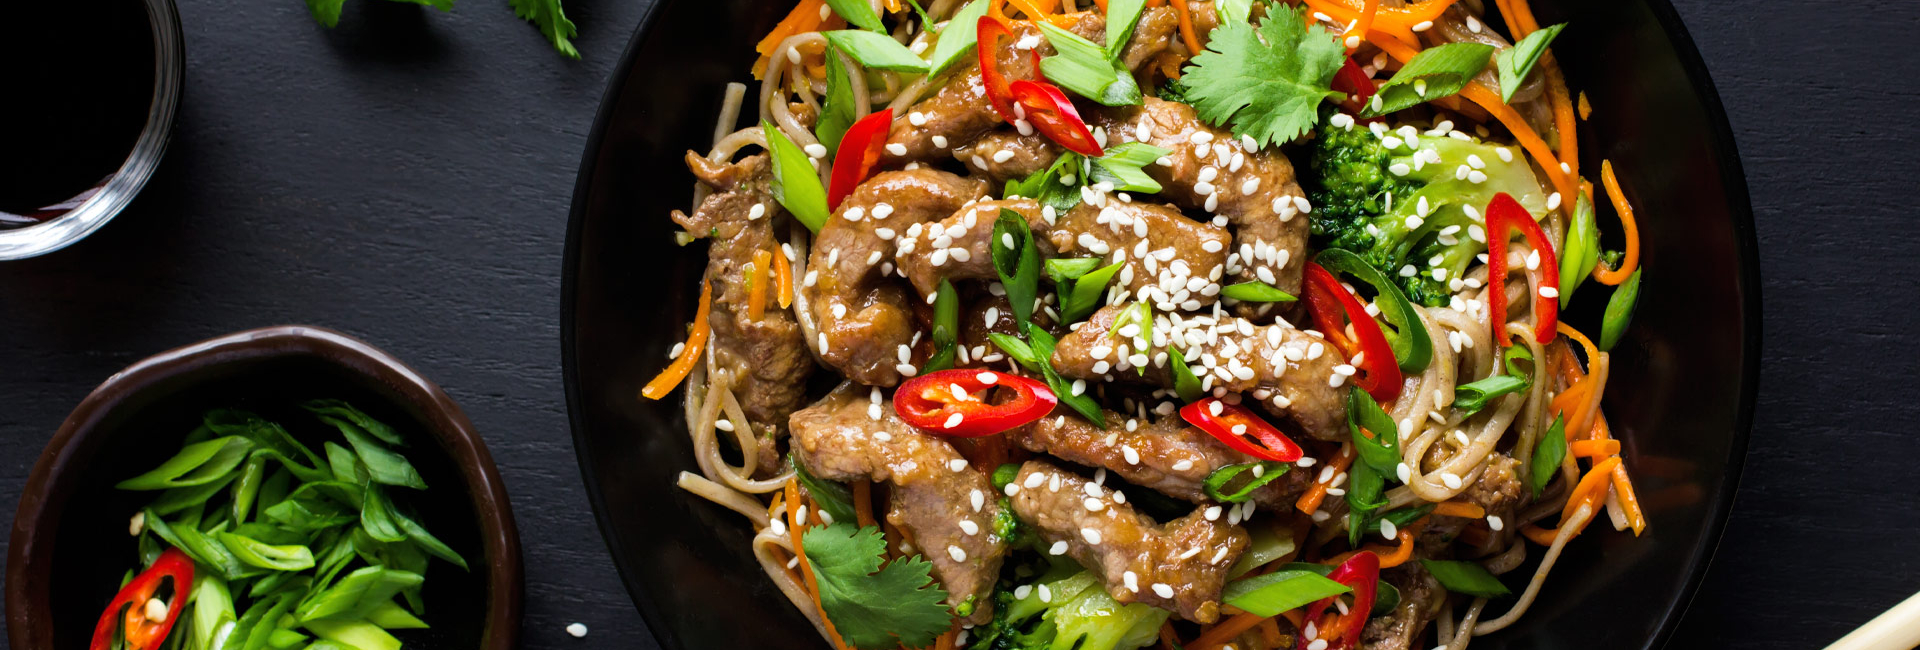 Asian beef and sesame seed salad